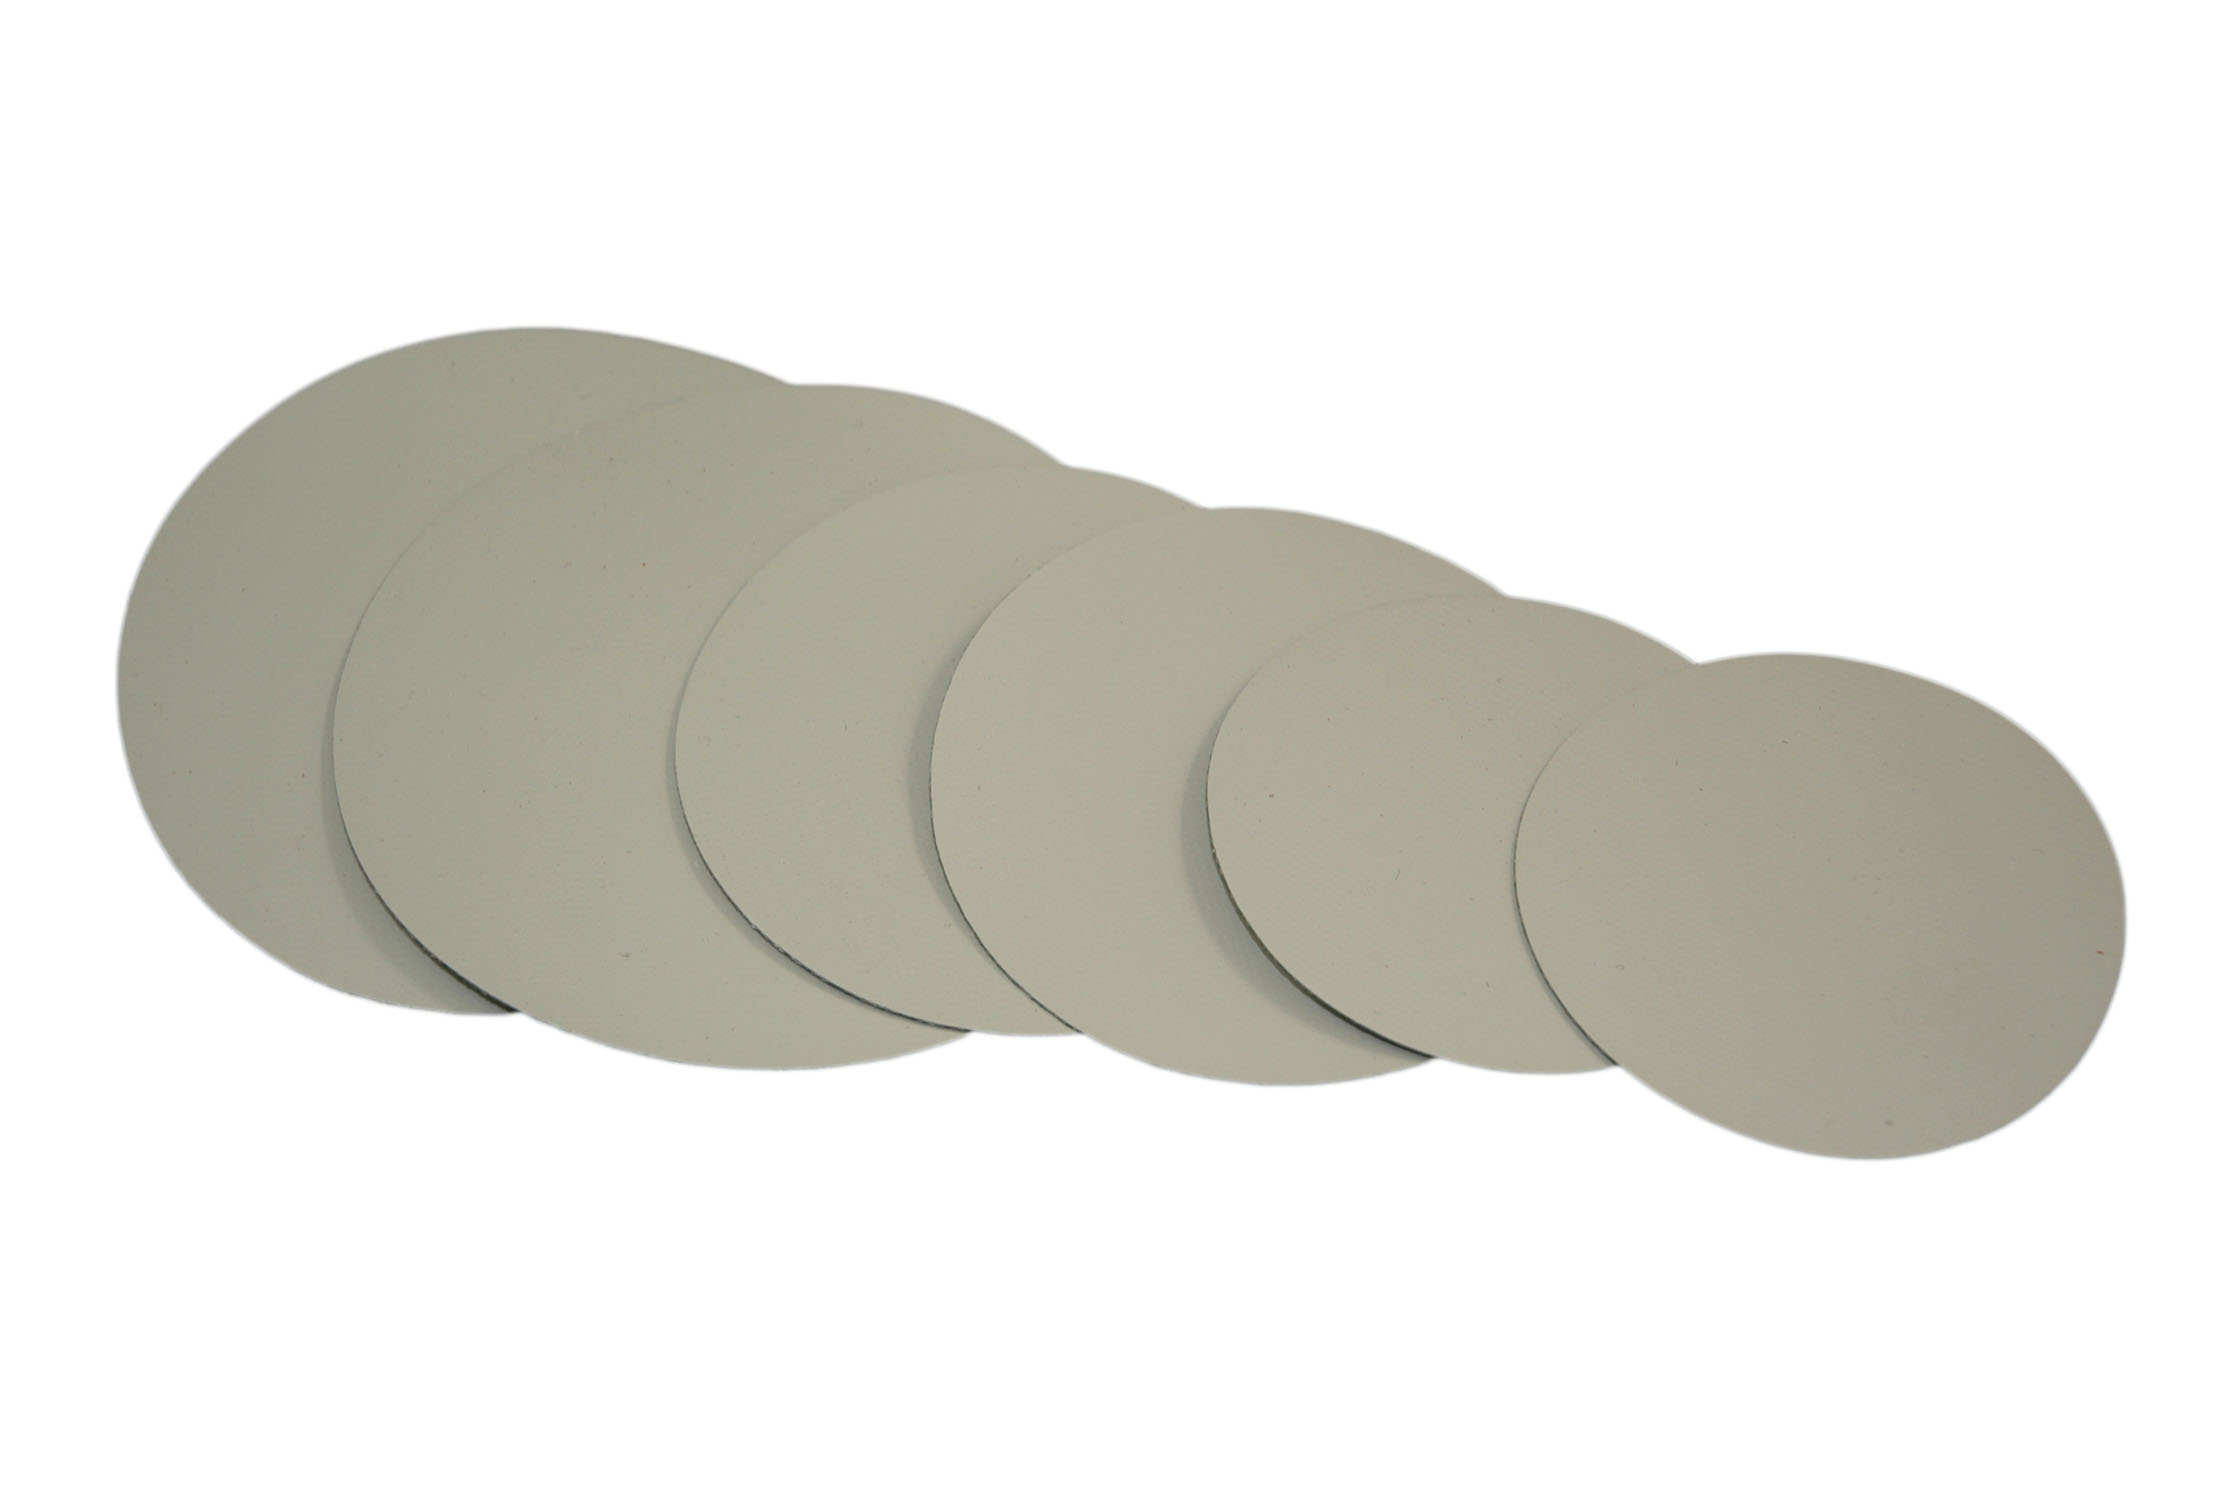 Hypalon Patches for Inflatable Boat Repair, 6, Available in Light Gray,  Dark Gray, Red, Black and White